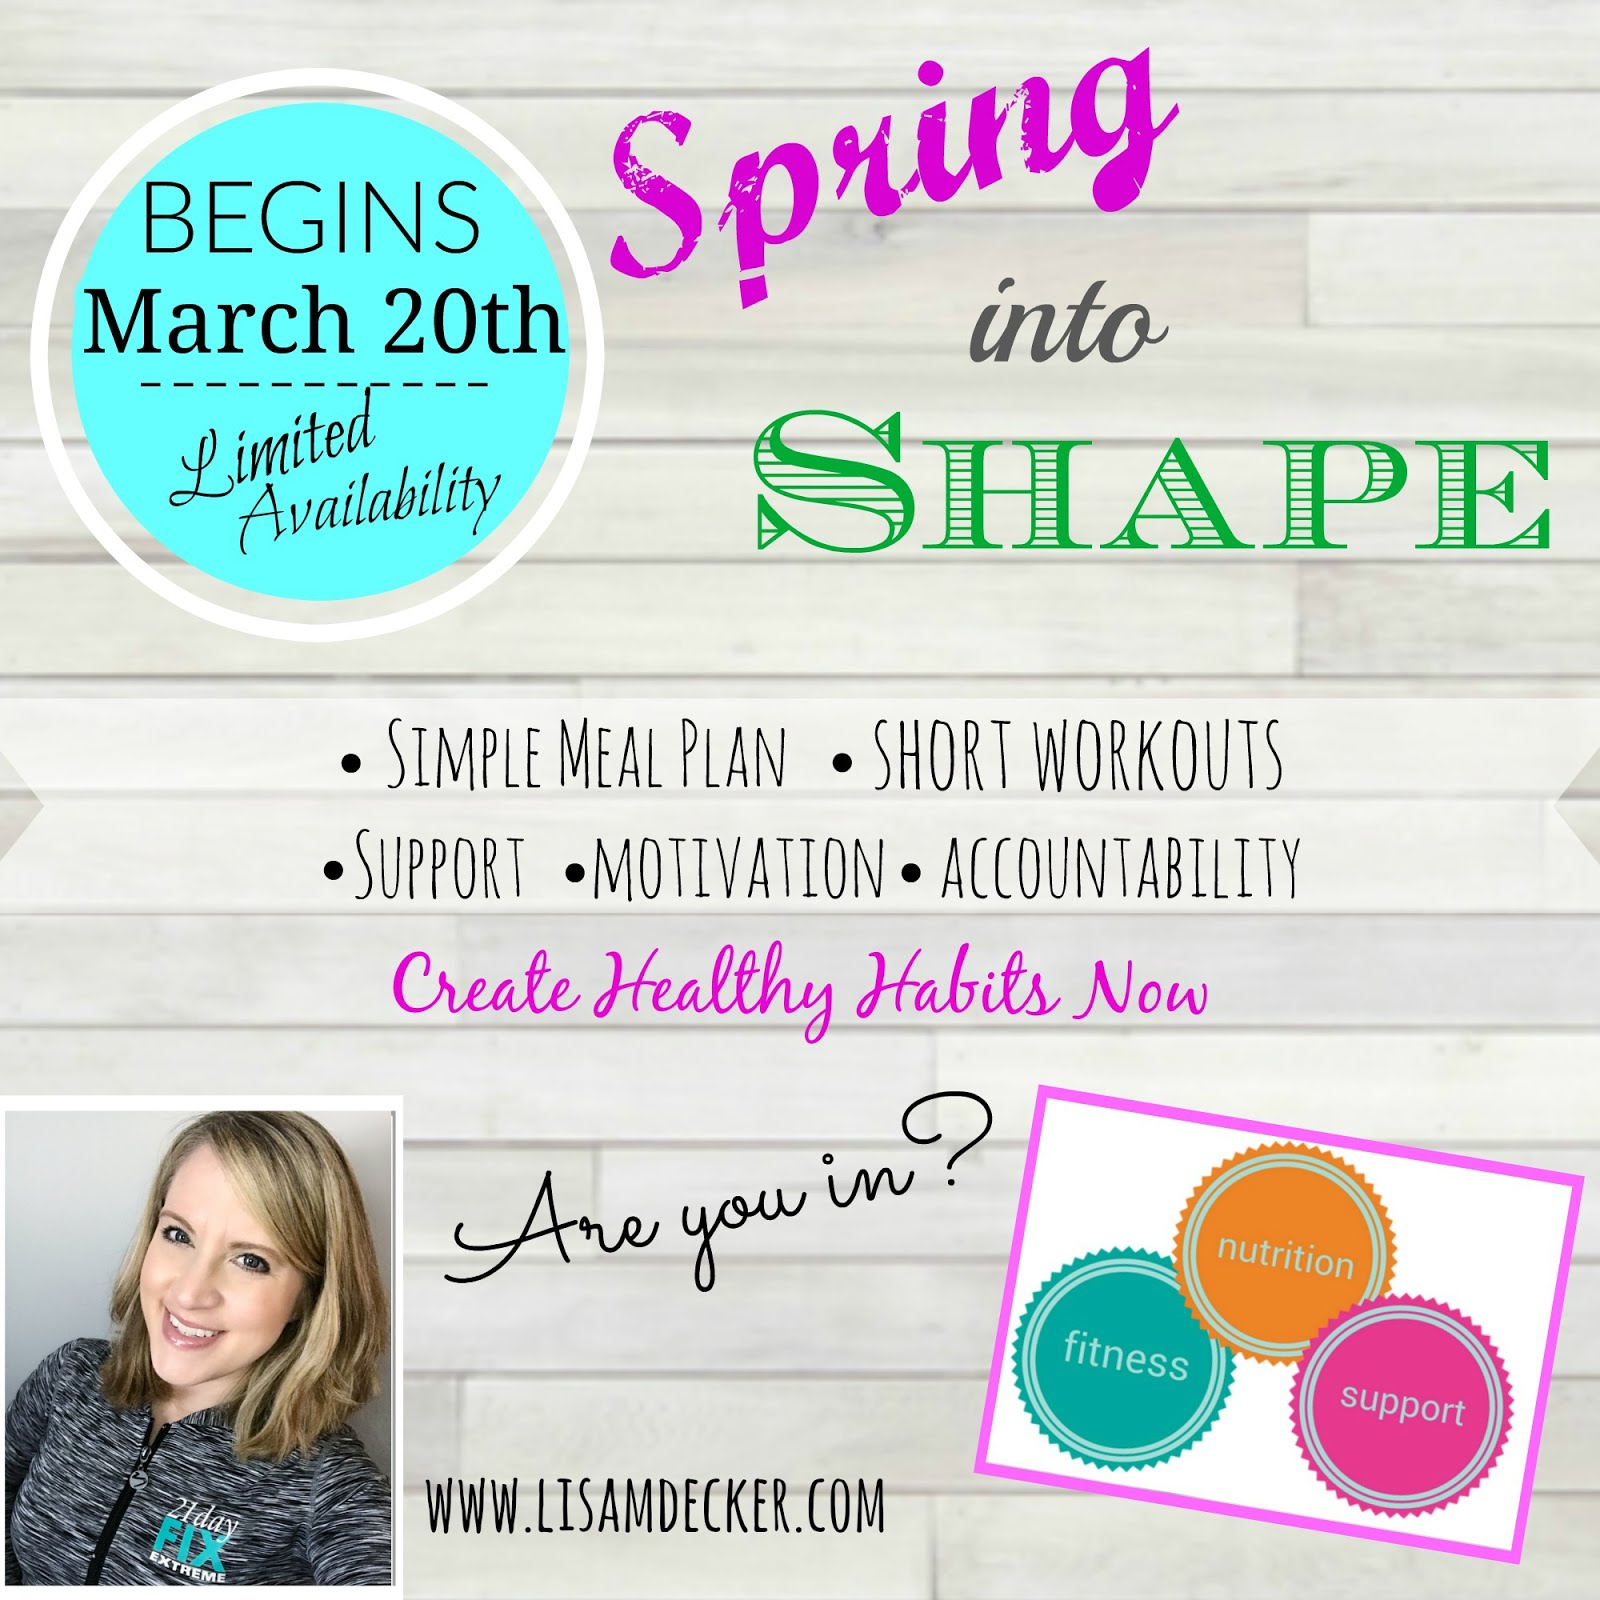 Spring into Shape Accountability....are you in?!